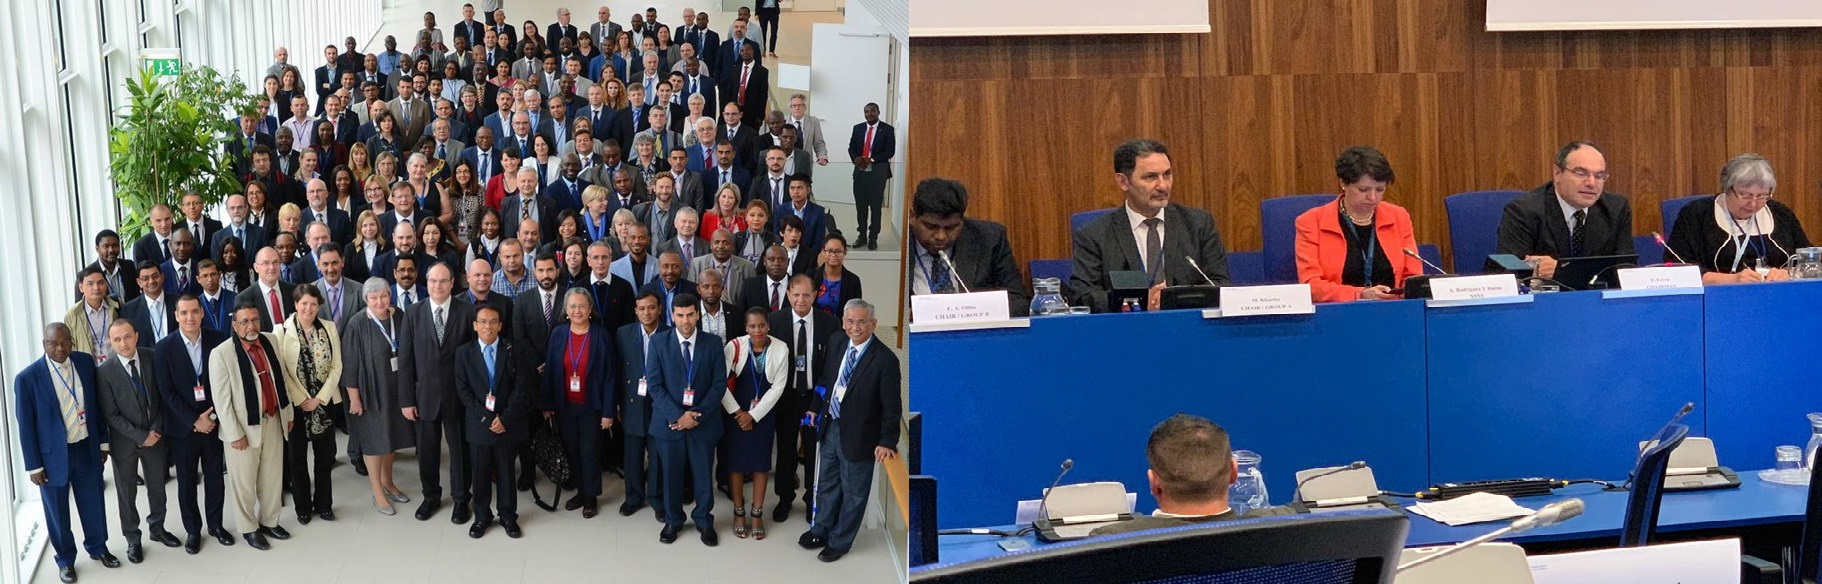 MEFOMP Countries are included in a wider Implementation of IAEA Code of Conduct to Enhance Safety and Security. Vienna, 27 to 31 May, 2019